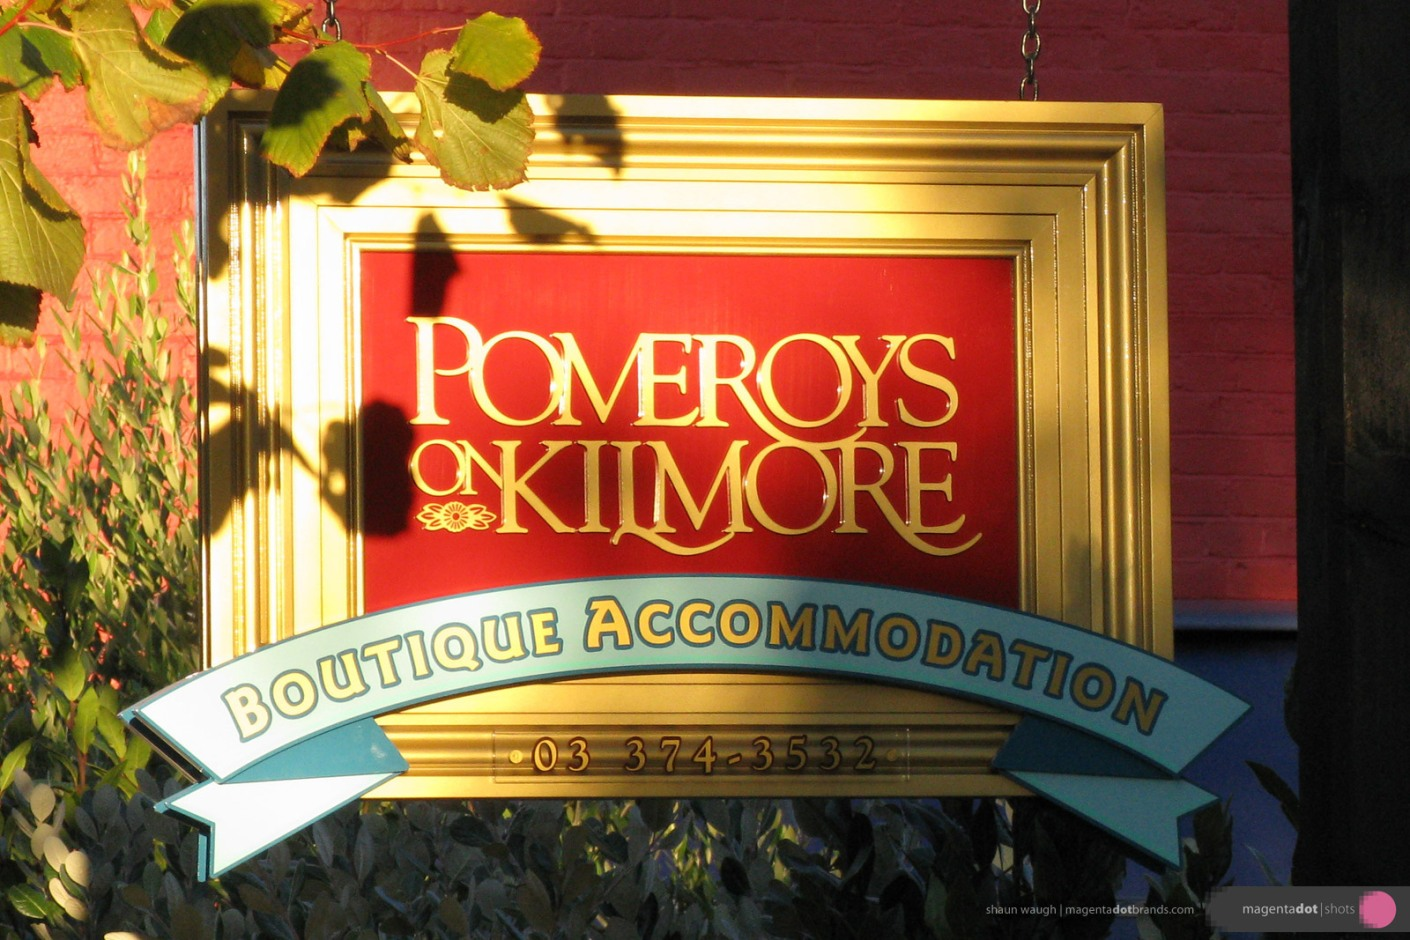 Pomeroys Boutique Accommodation logo and hand-crafted three dimensional sign.